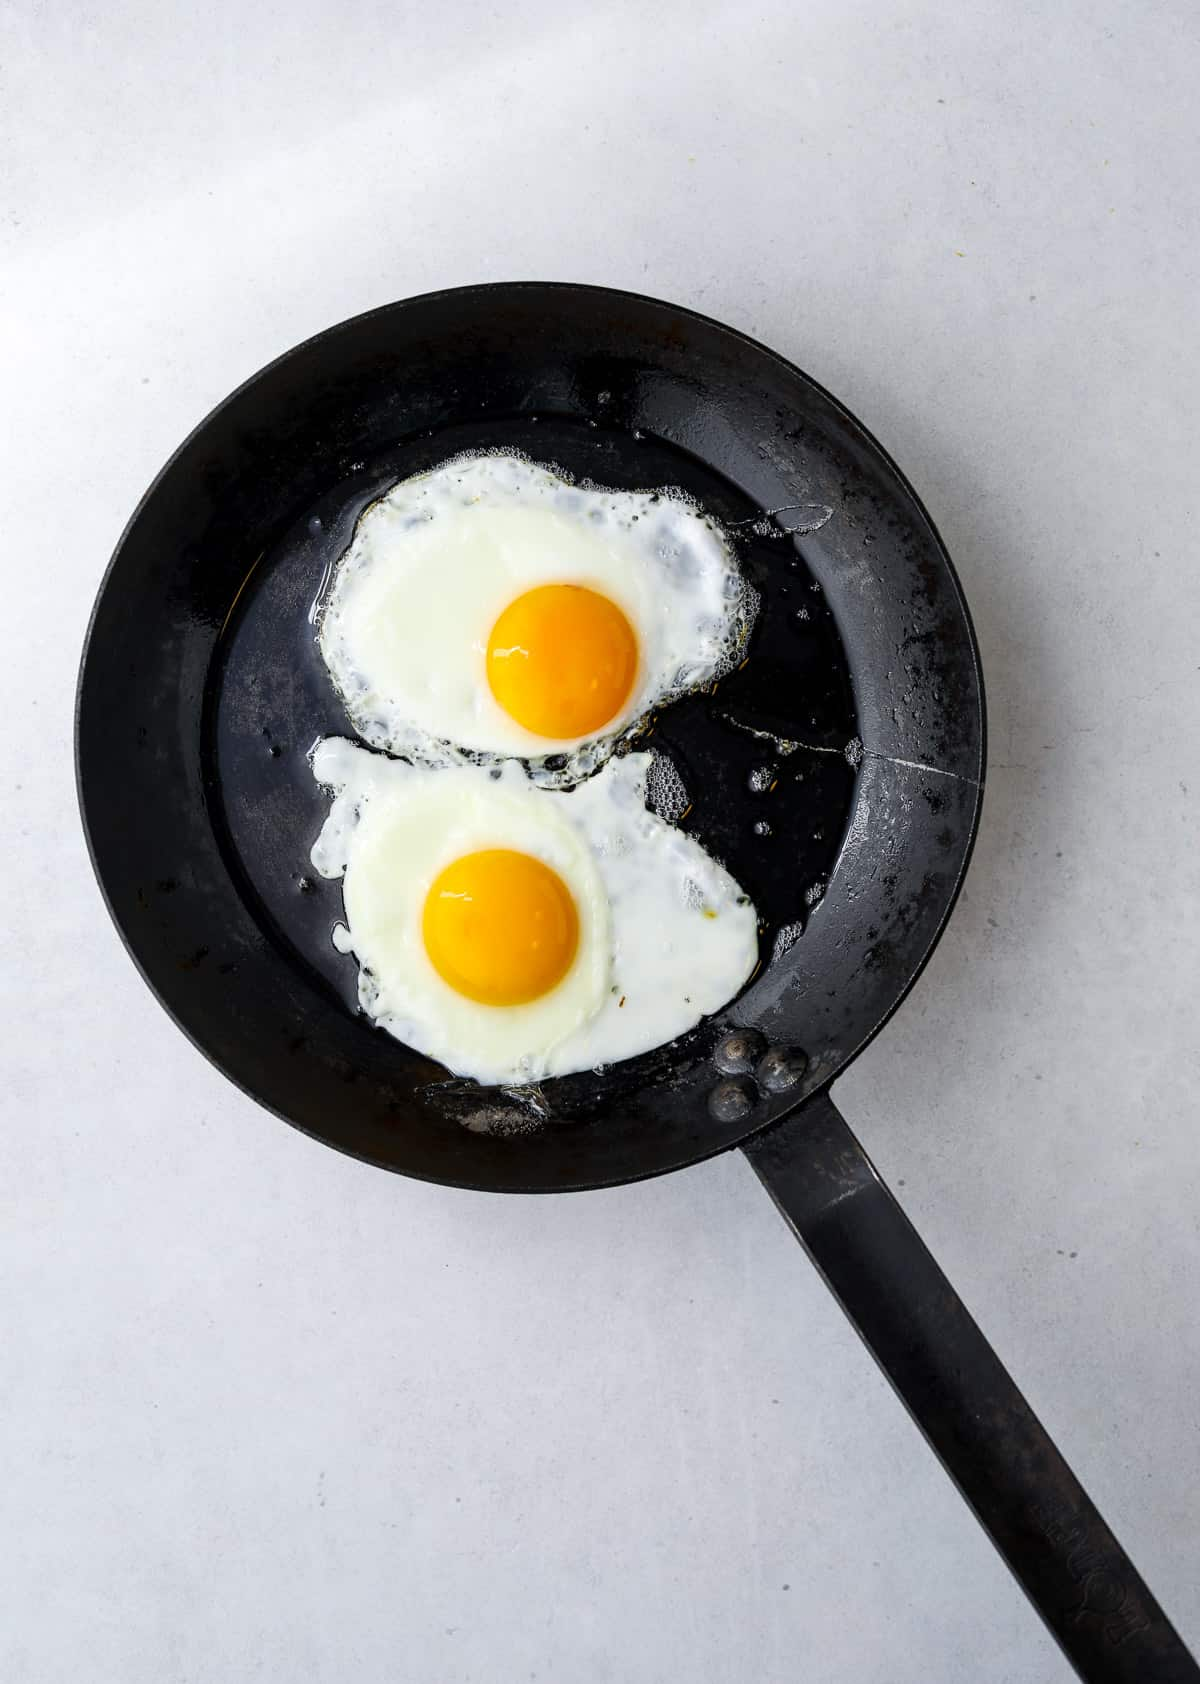 two sunny side up eggs in a cast iron pan